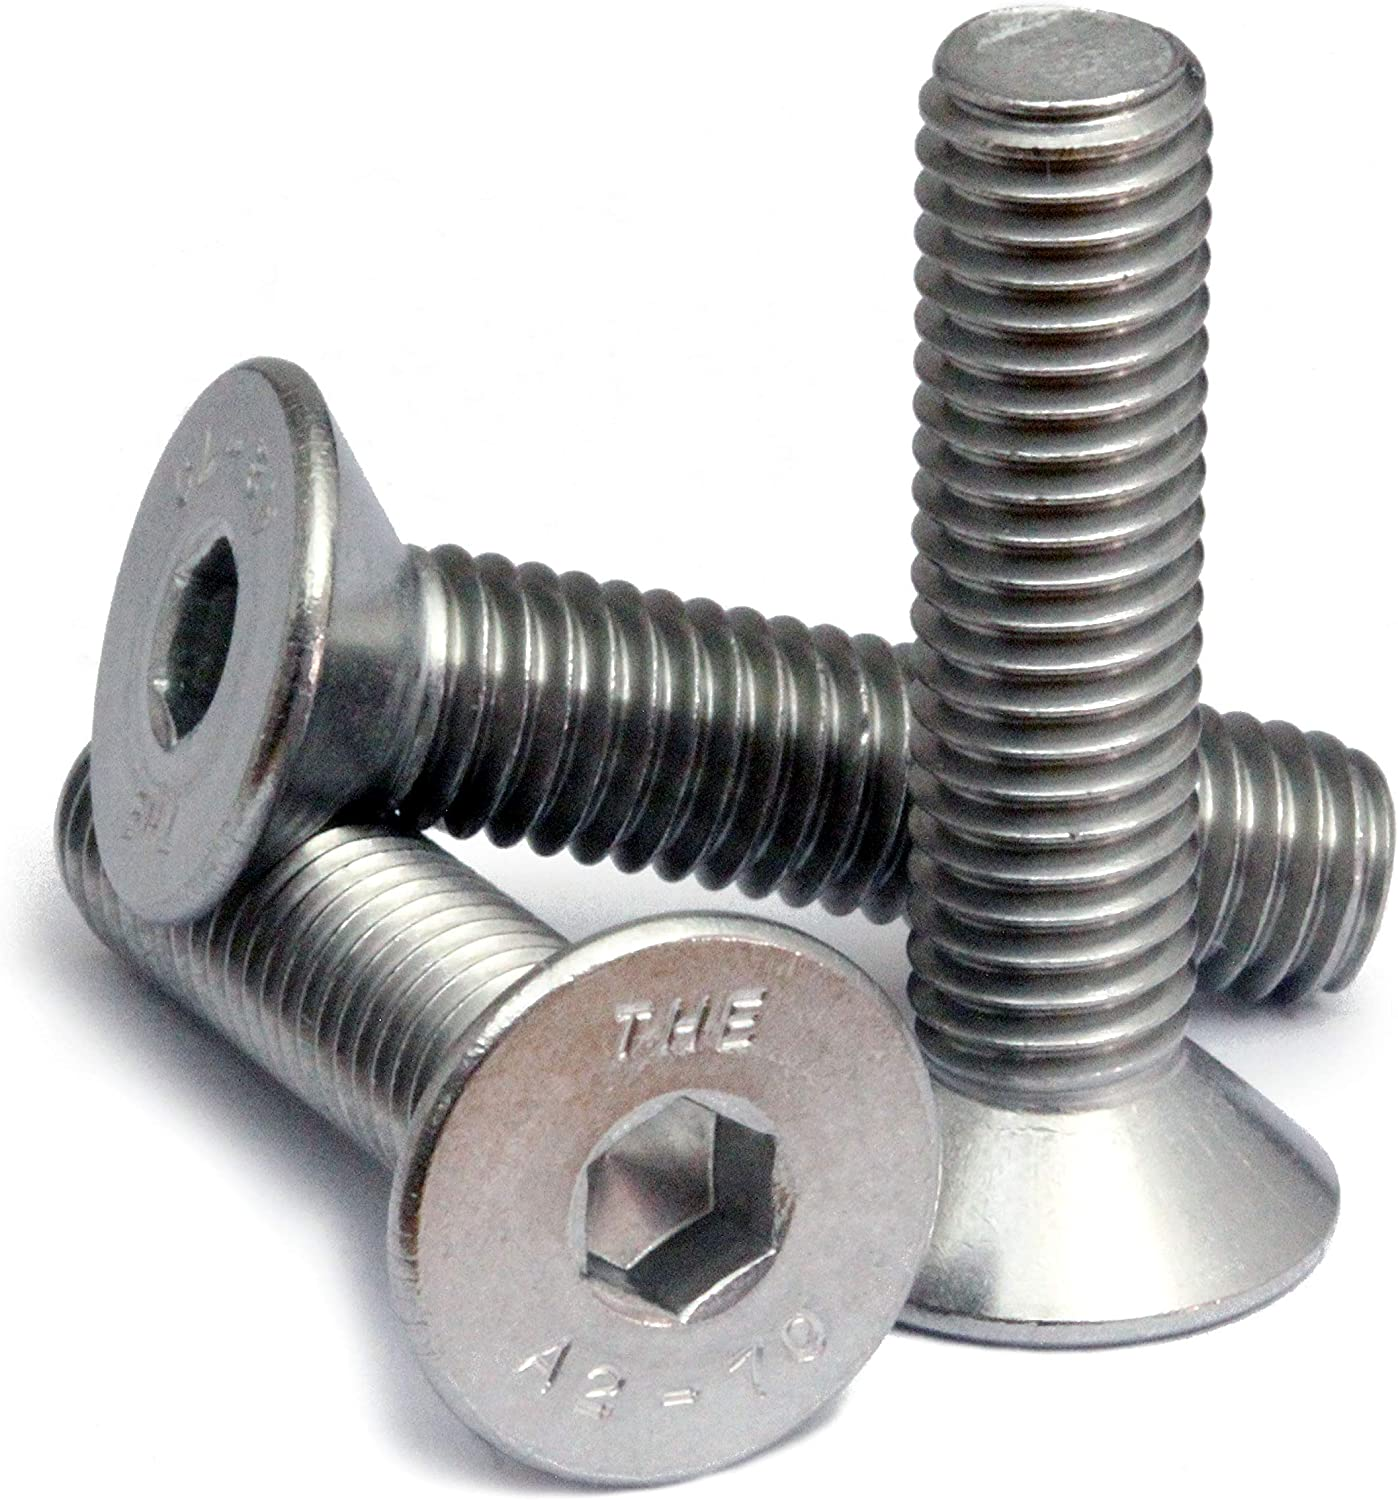 M4 X 10 Slotted Countersunk Machine Screws A2 stainless DIN 963-10 pk